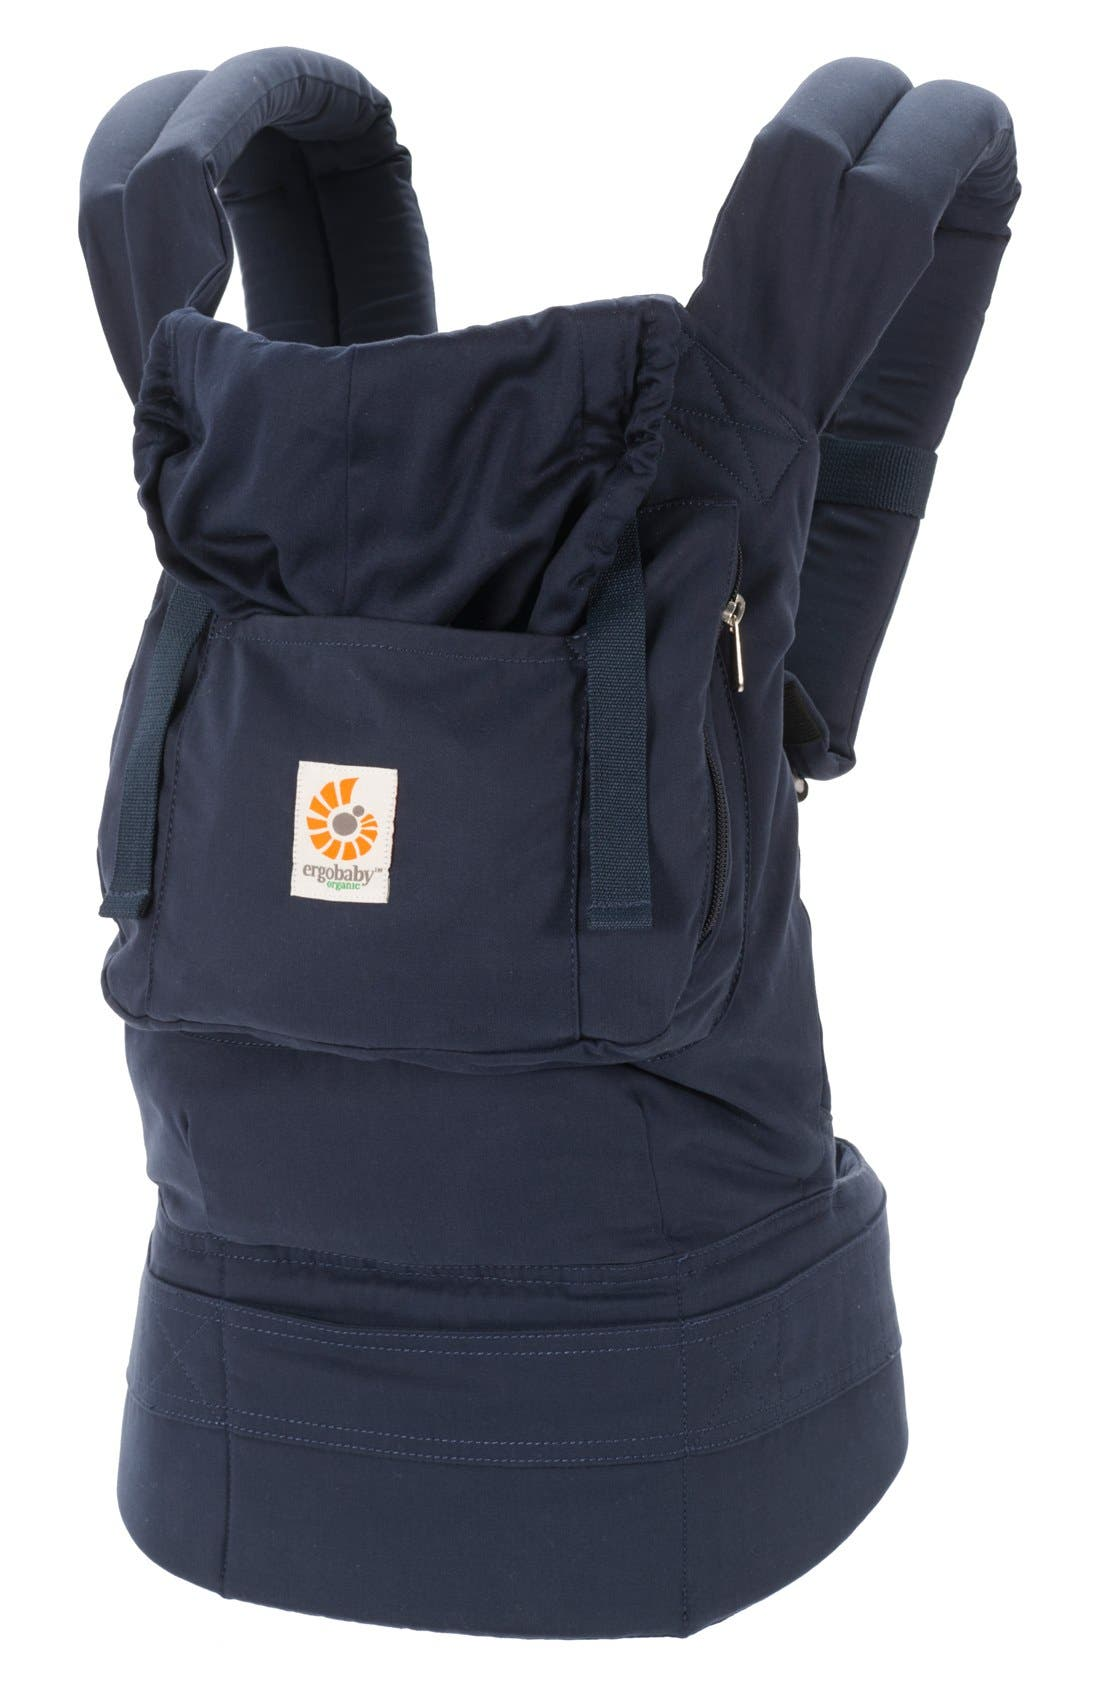 Organic Cotton Baby Carrier,                             Main thumbnail 1, color,                             417